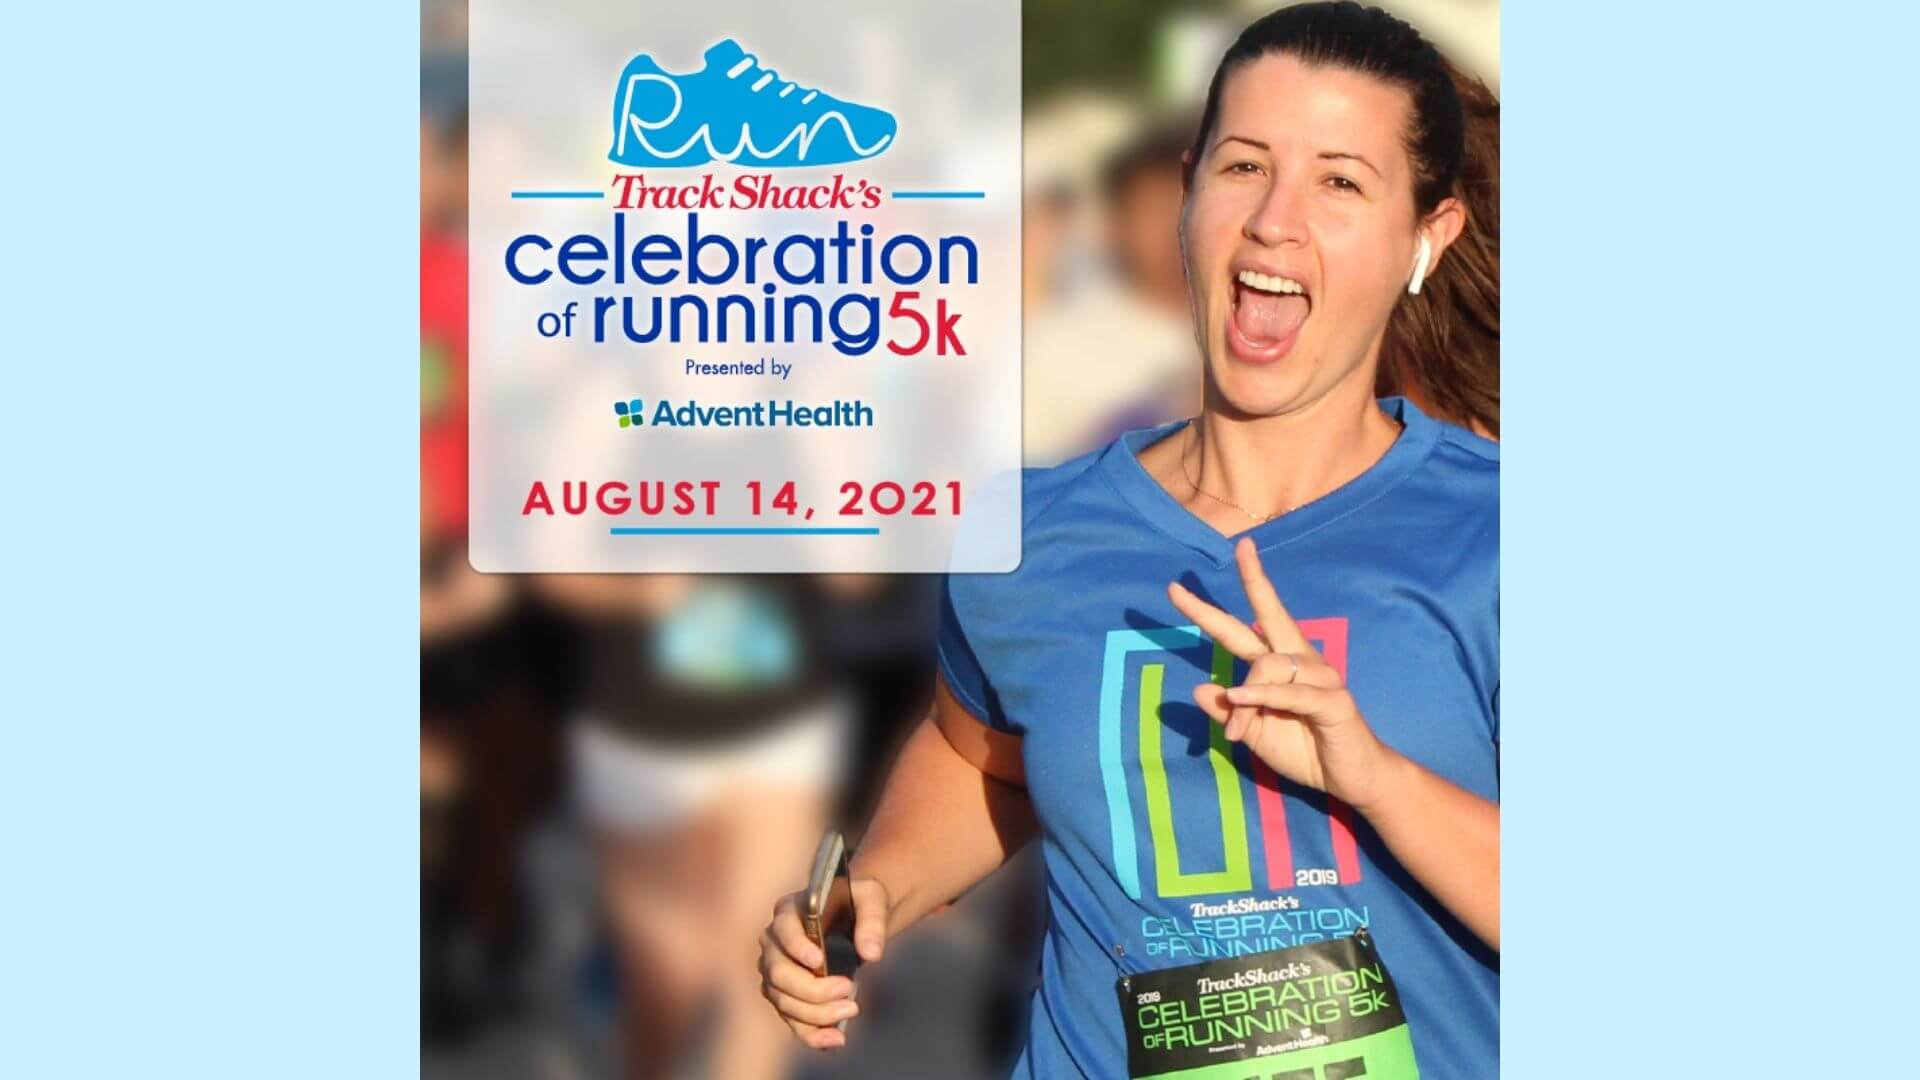 Track Shack's Celebration of Running presented by adventhealth August 14, 2021 - a photo of a woman jogging and smiling